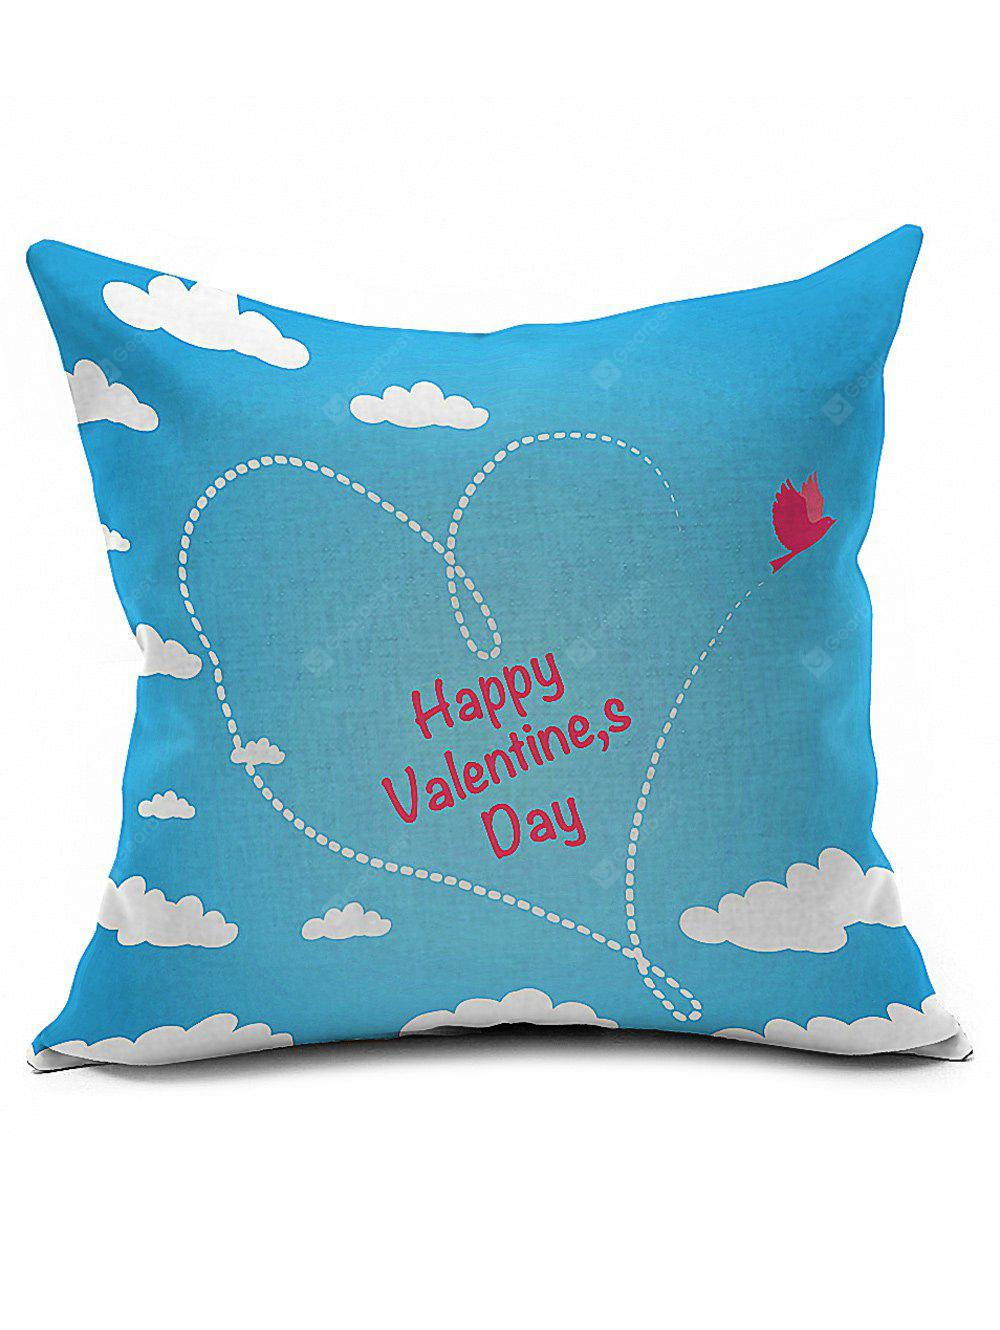 Heart Happy Valentine's Day Linen Sofa Bed Throw Pillowcase